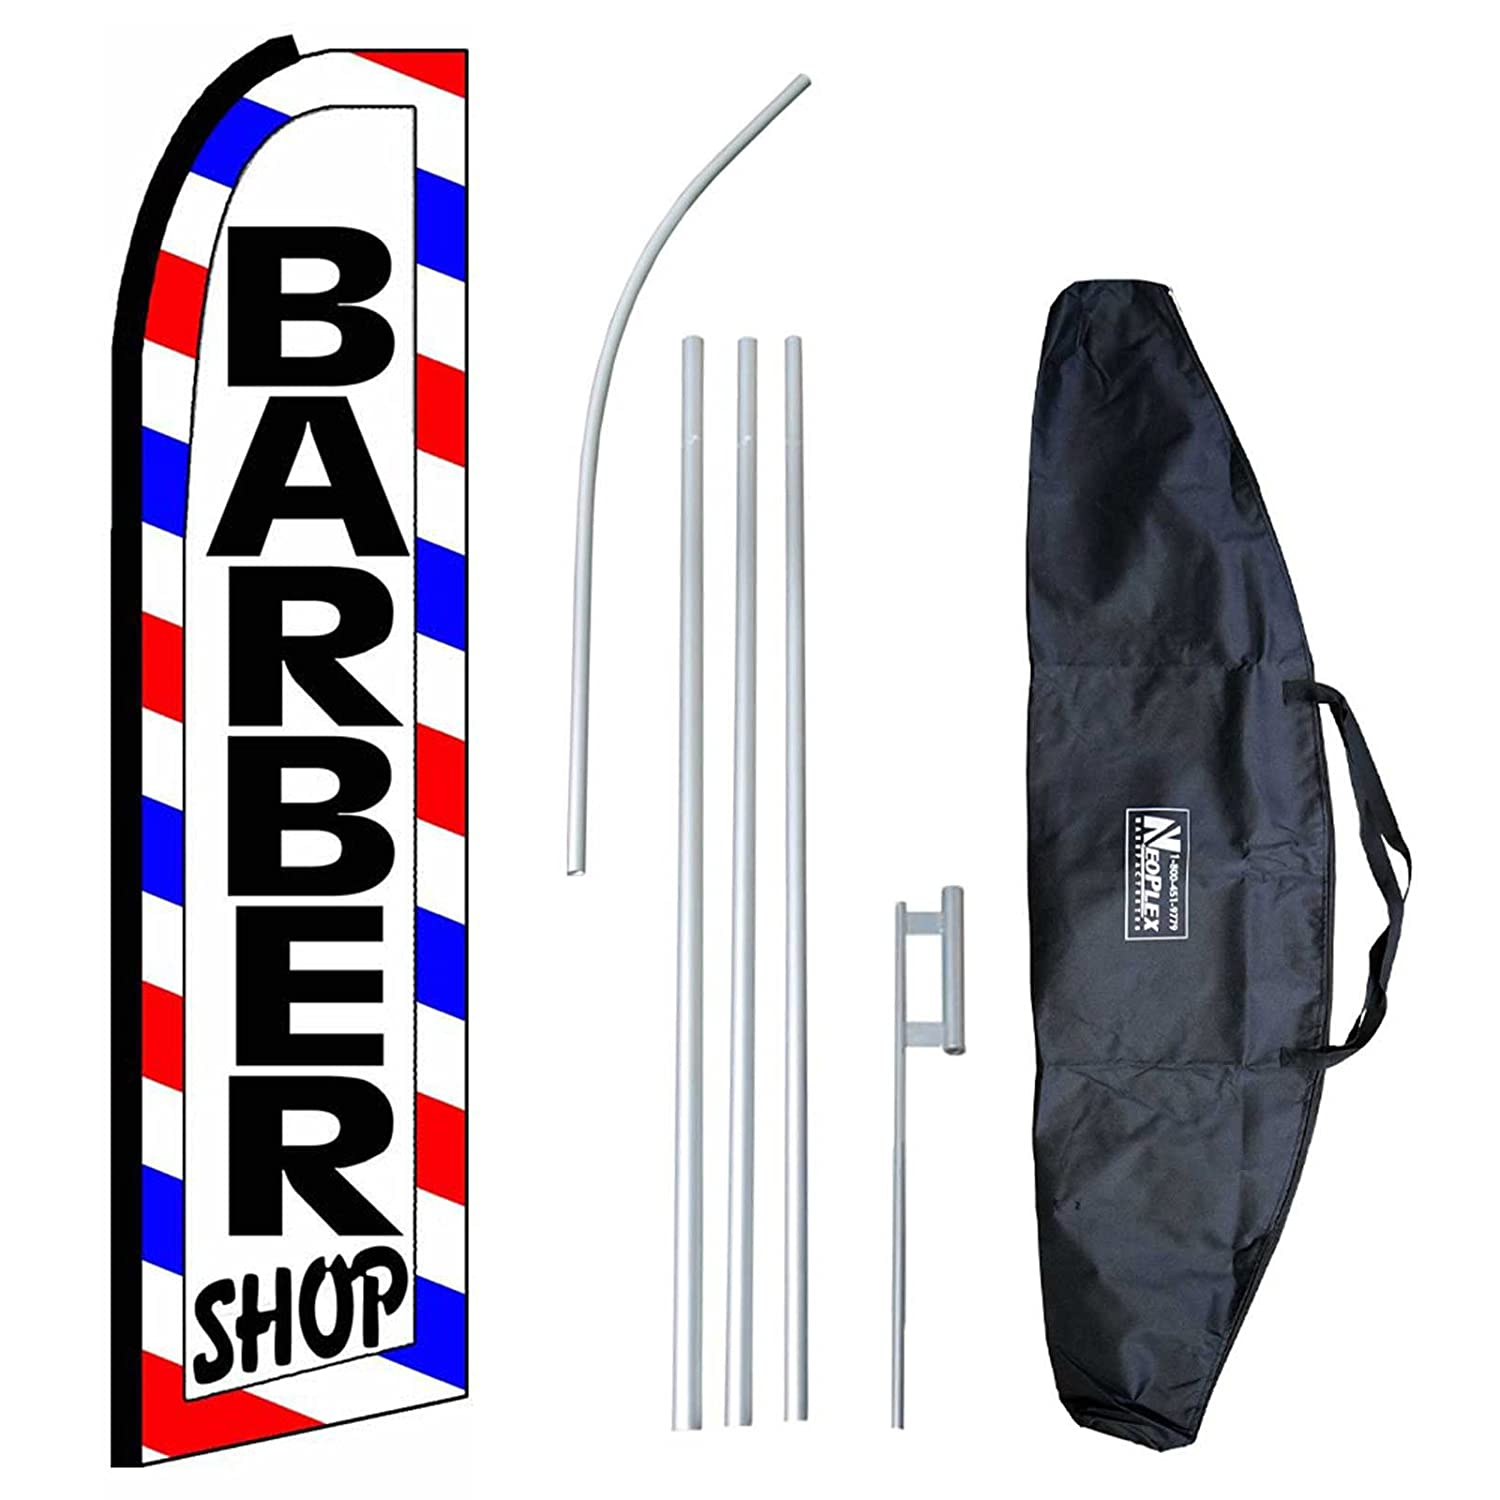 """Barber Shop (Extra Wide)"" 12-foot Swooper Feather Flag and Case Complete Set...includes 12-foot Flag, 15-foot Pole, Ground Spike, and Carrying/Storage Case"